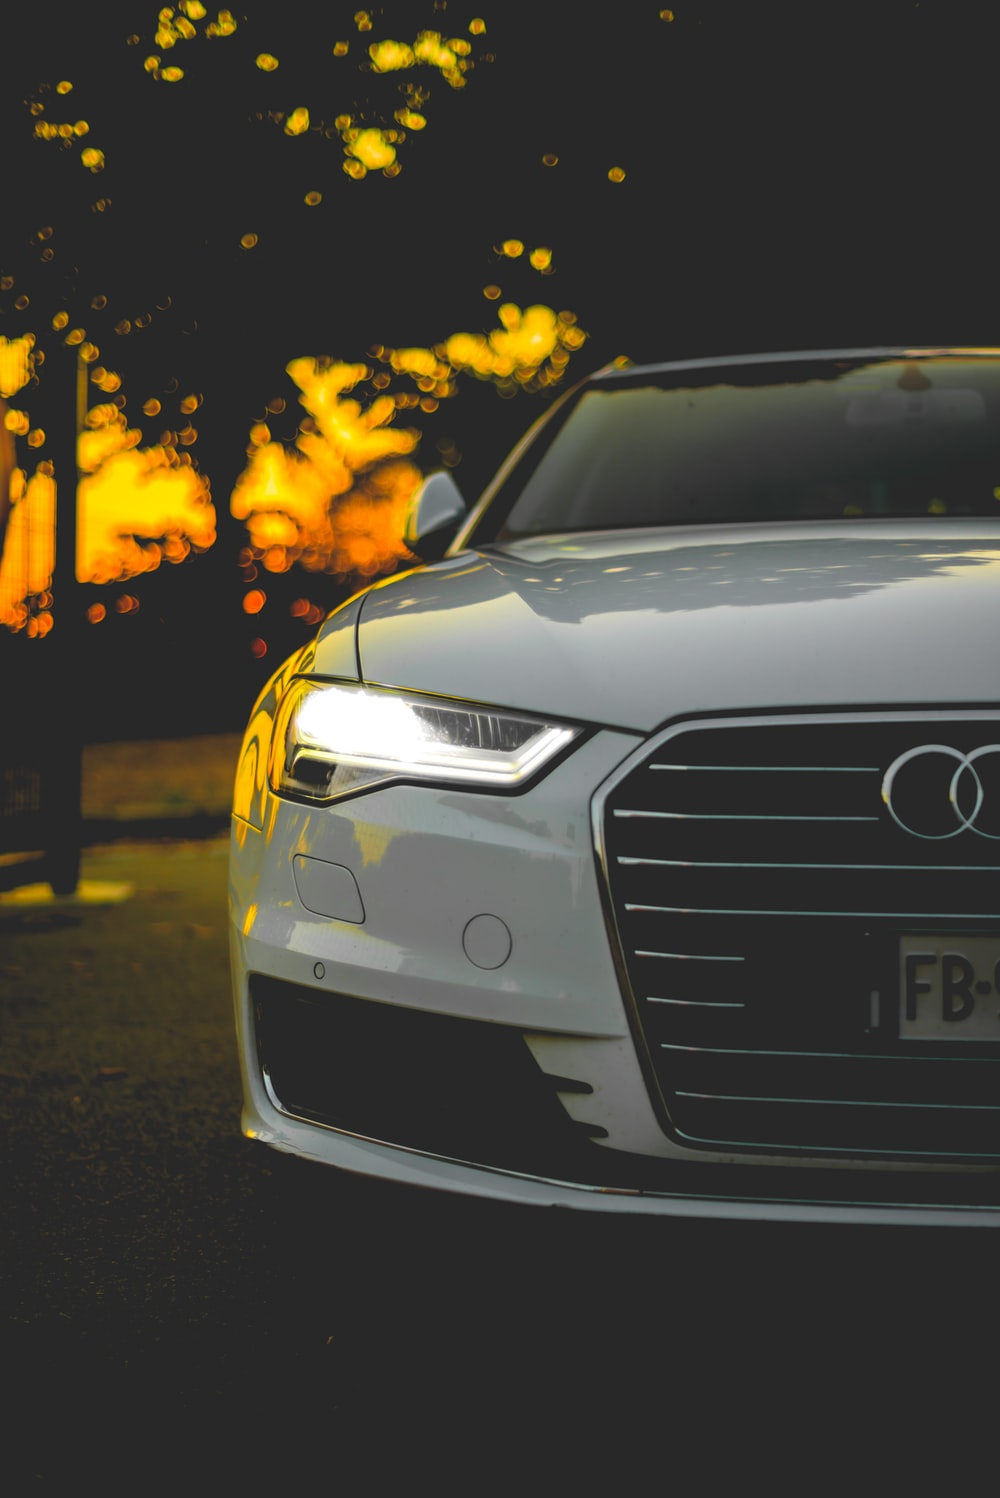 Car Front Pictures Hd Download Free Images On Unsplash